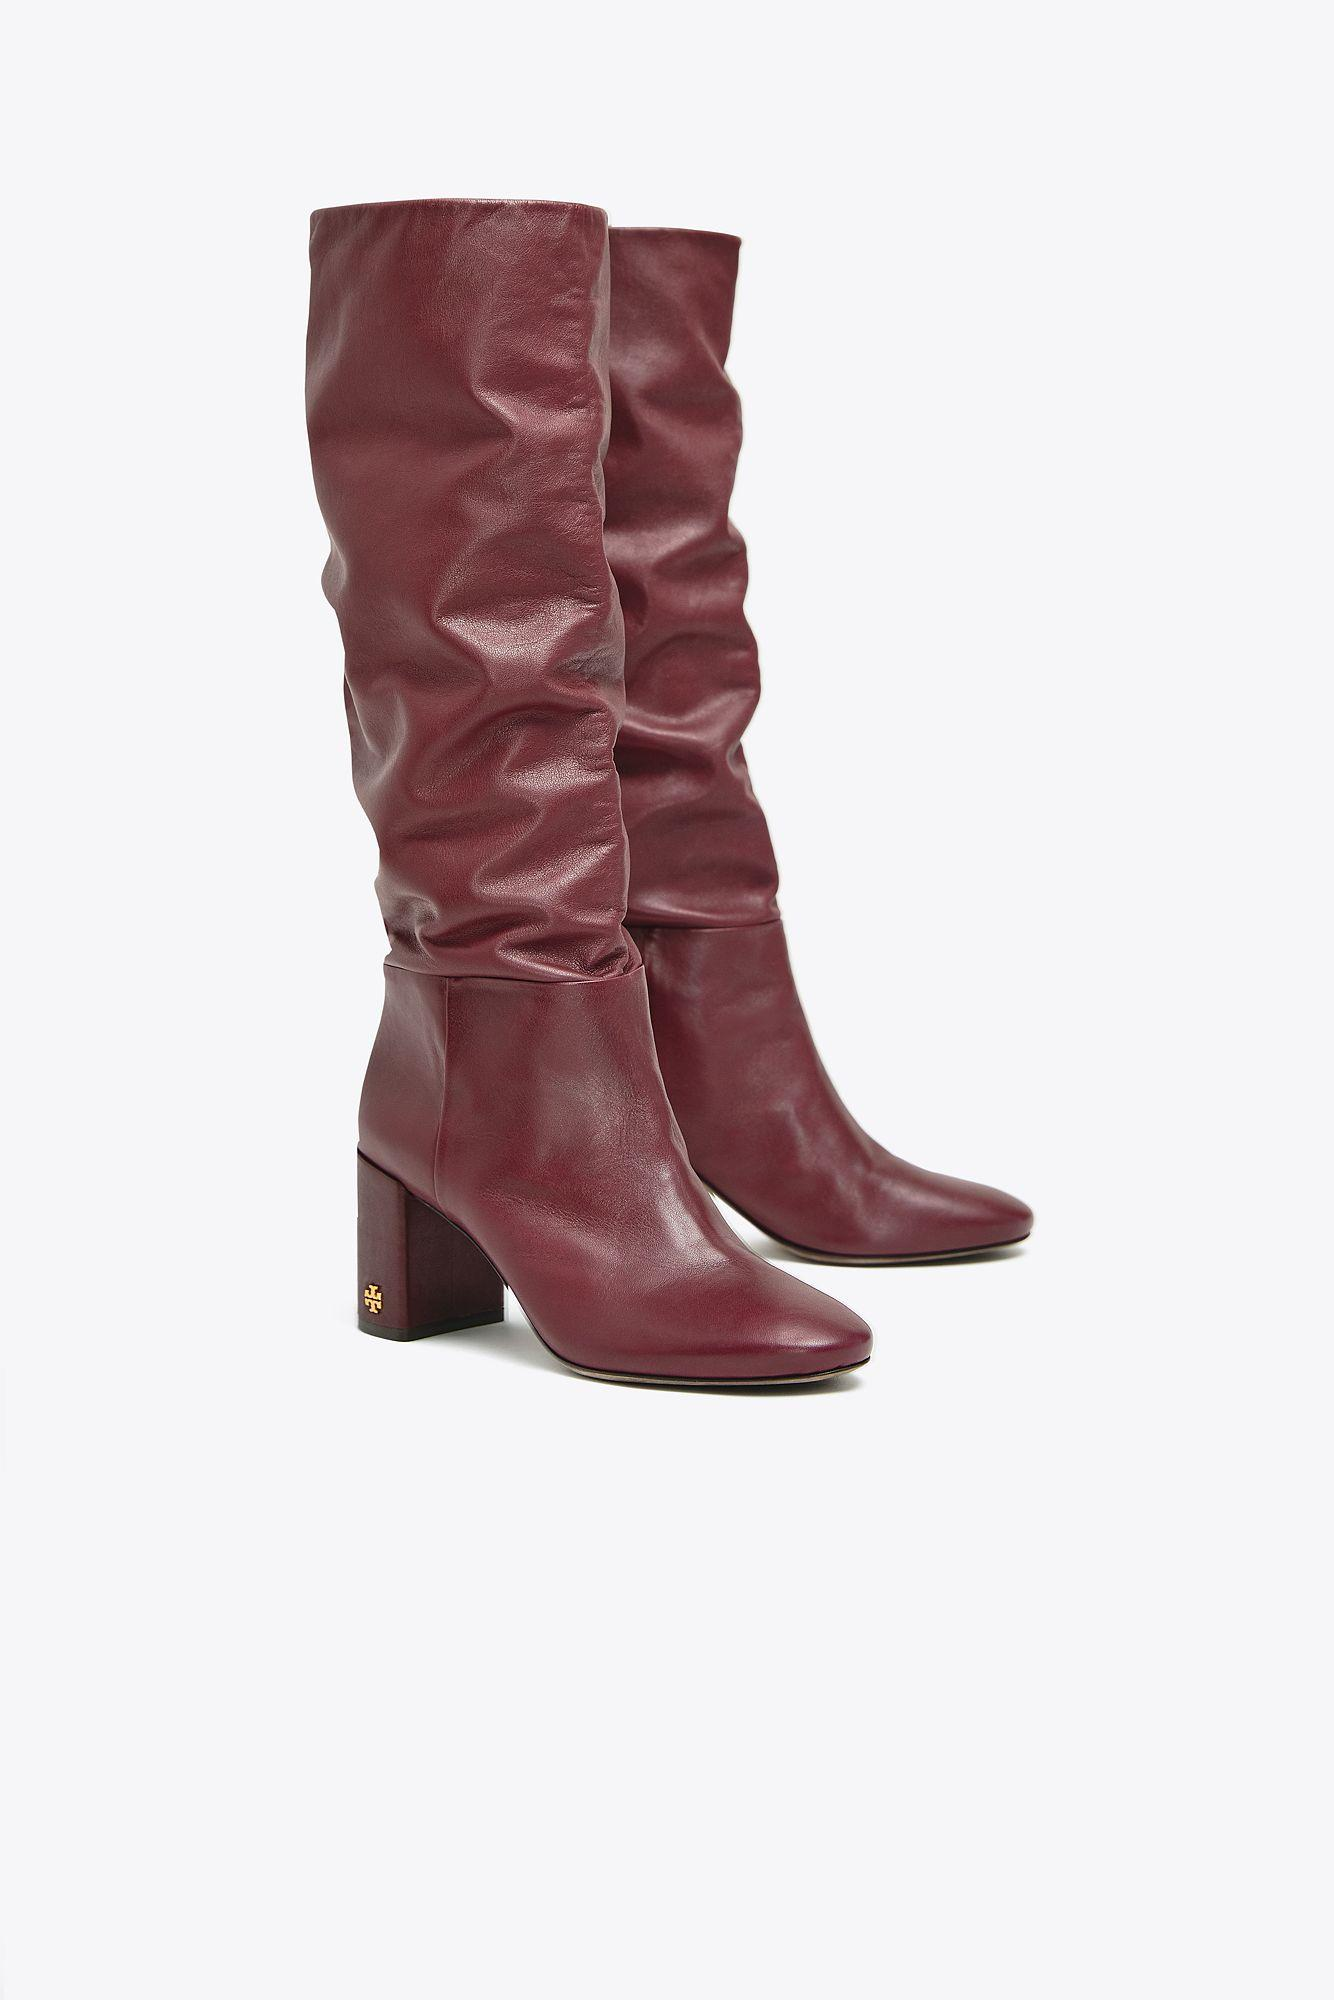 9d09f2216bfe Tory Burch Women s Brooke Slouchy Leather Tall Boots in Red - Lyst